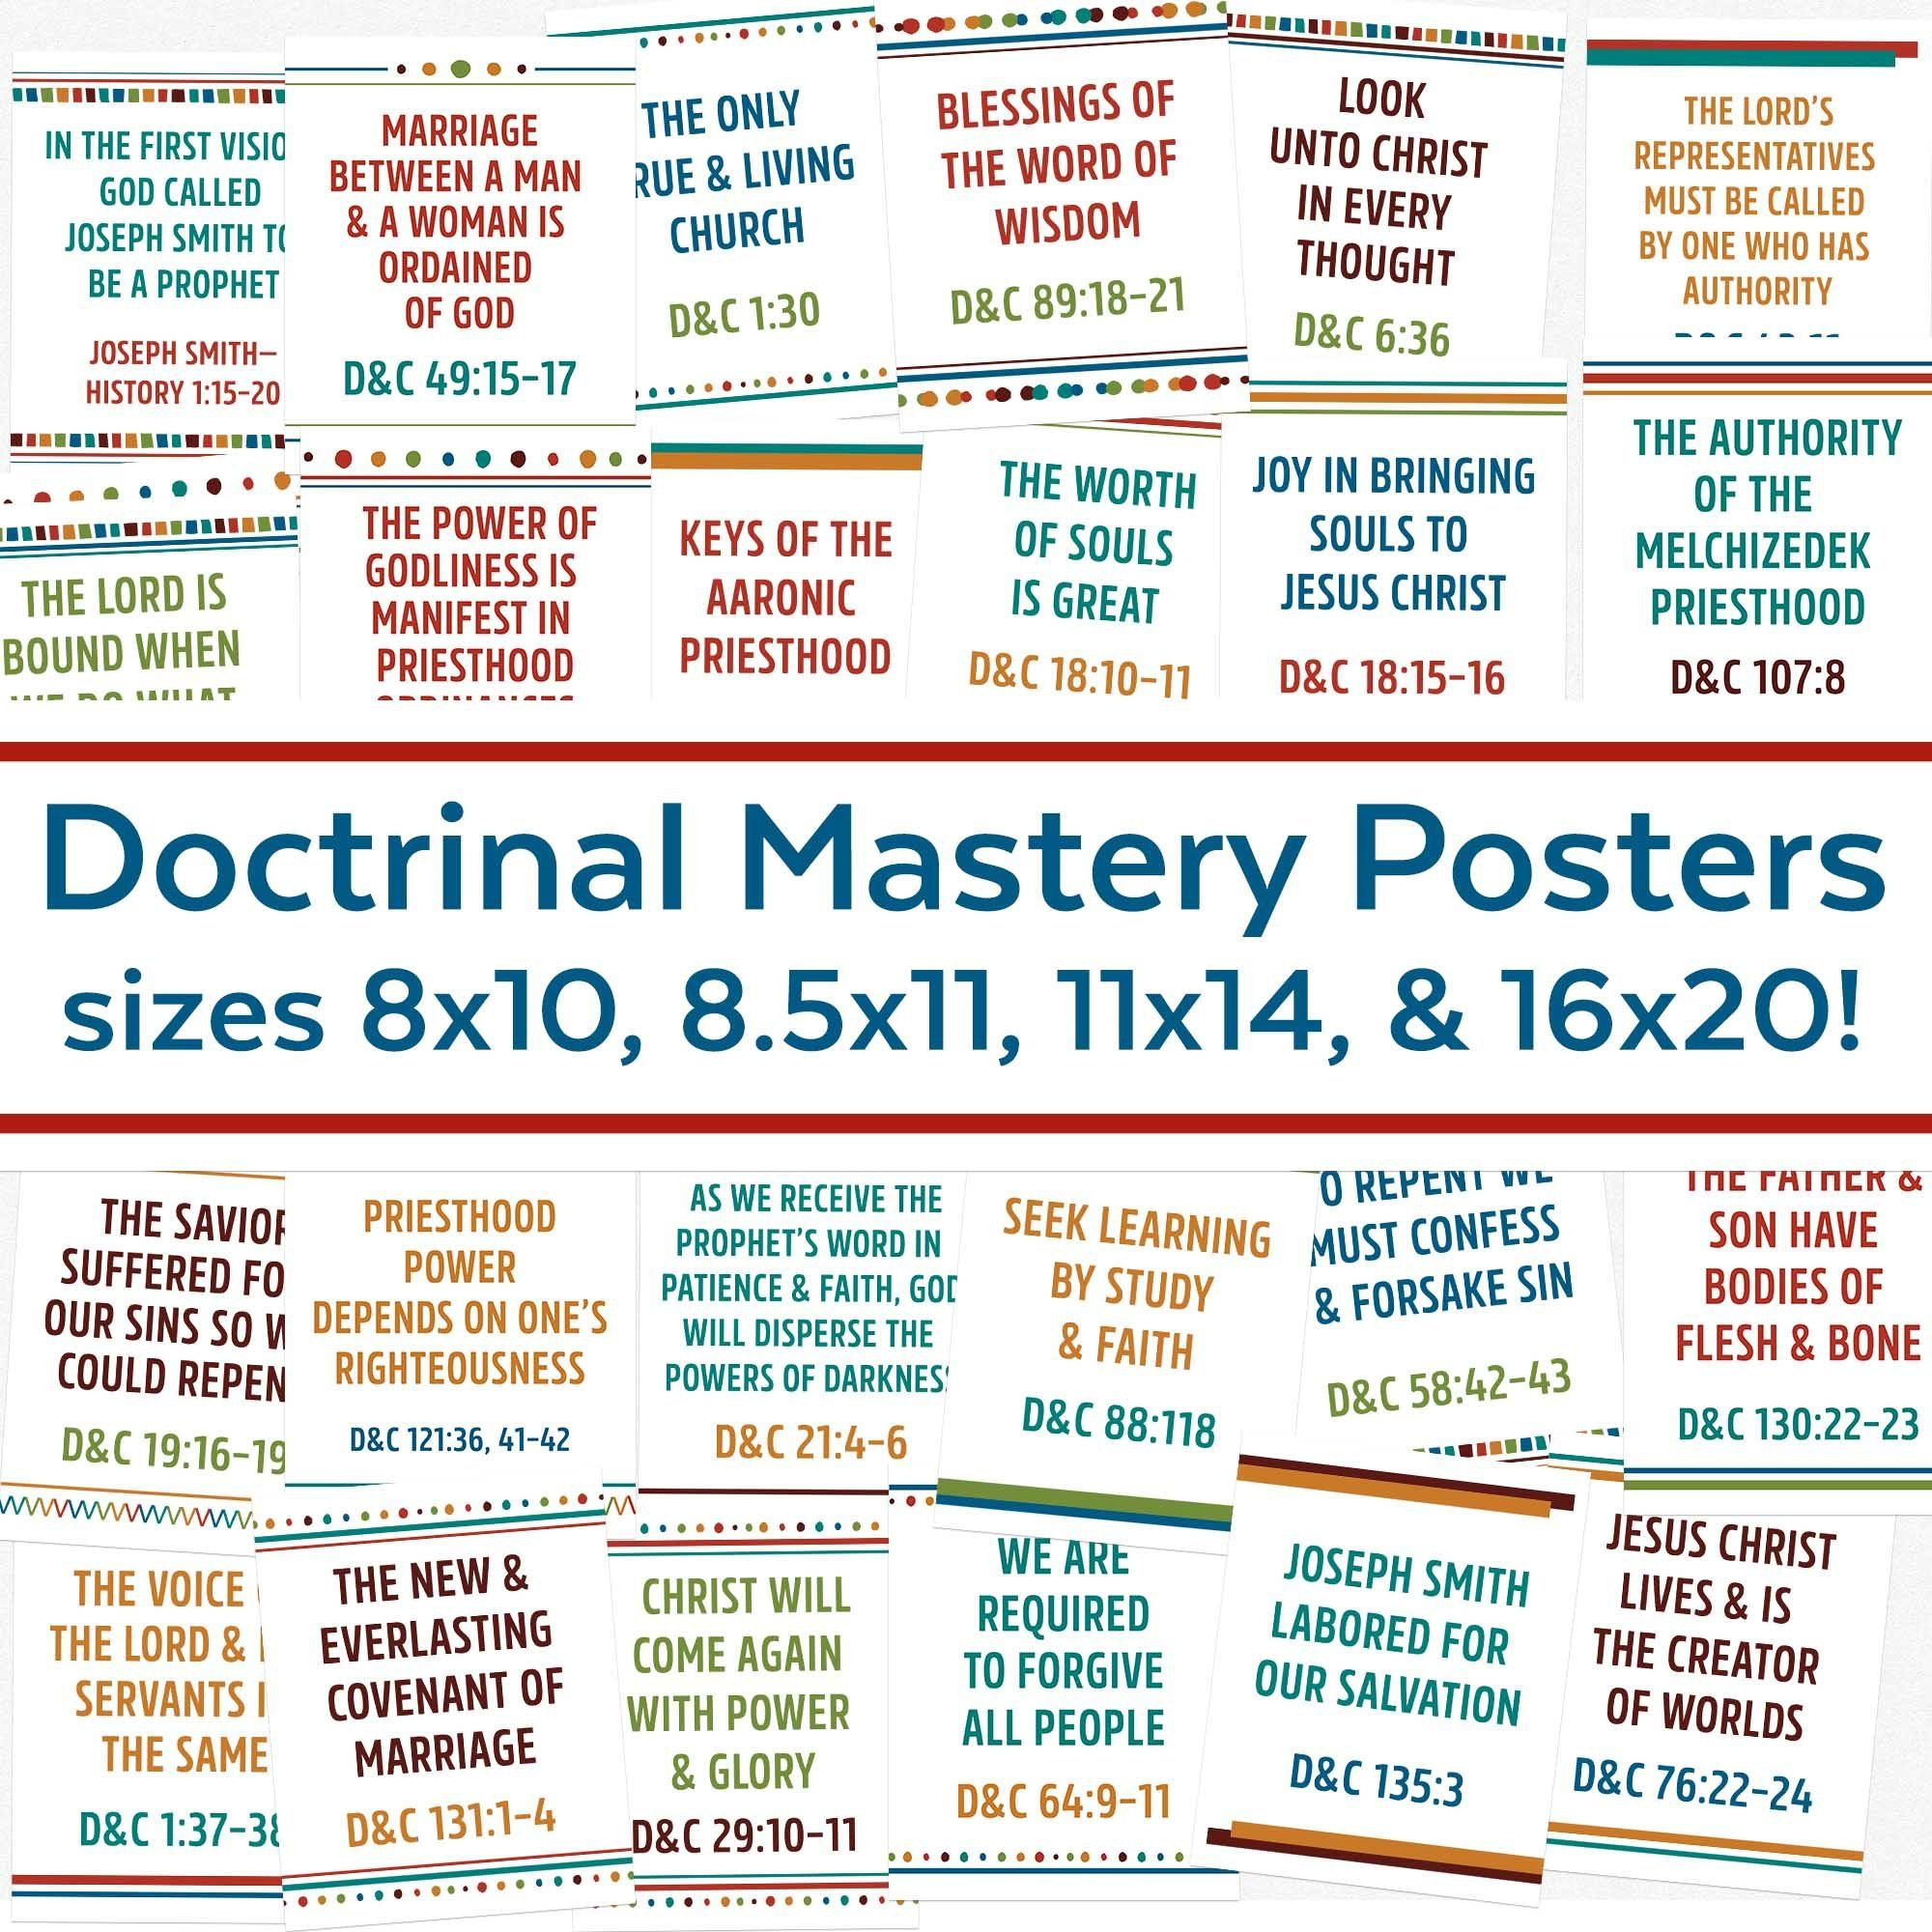 Doctrinal Mastery Posters for Doctrine & Covenants